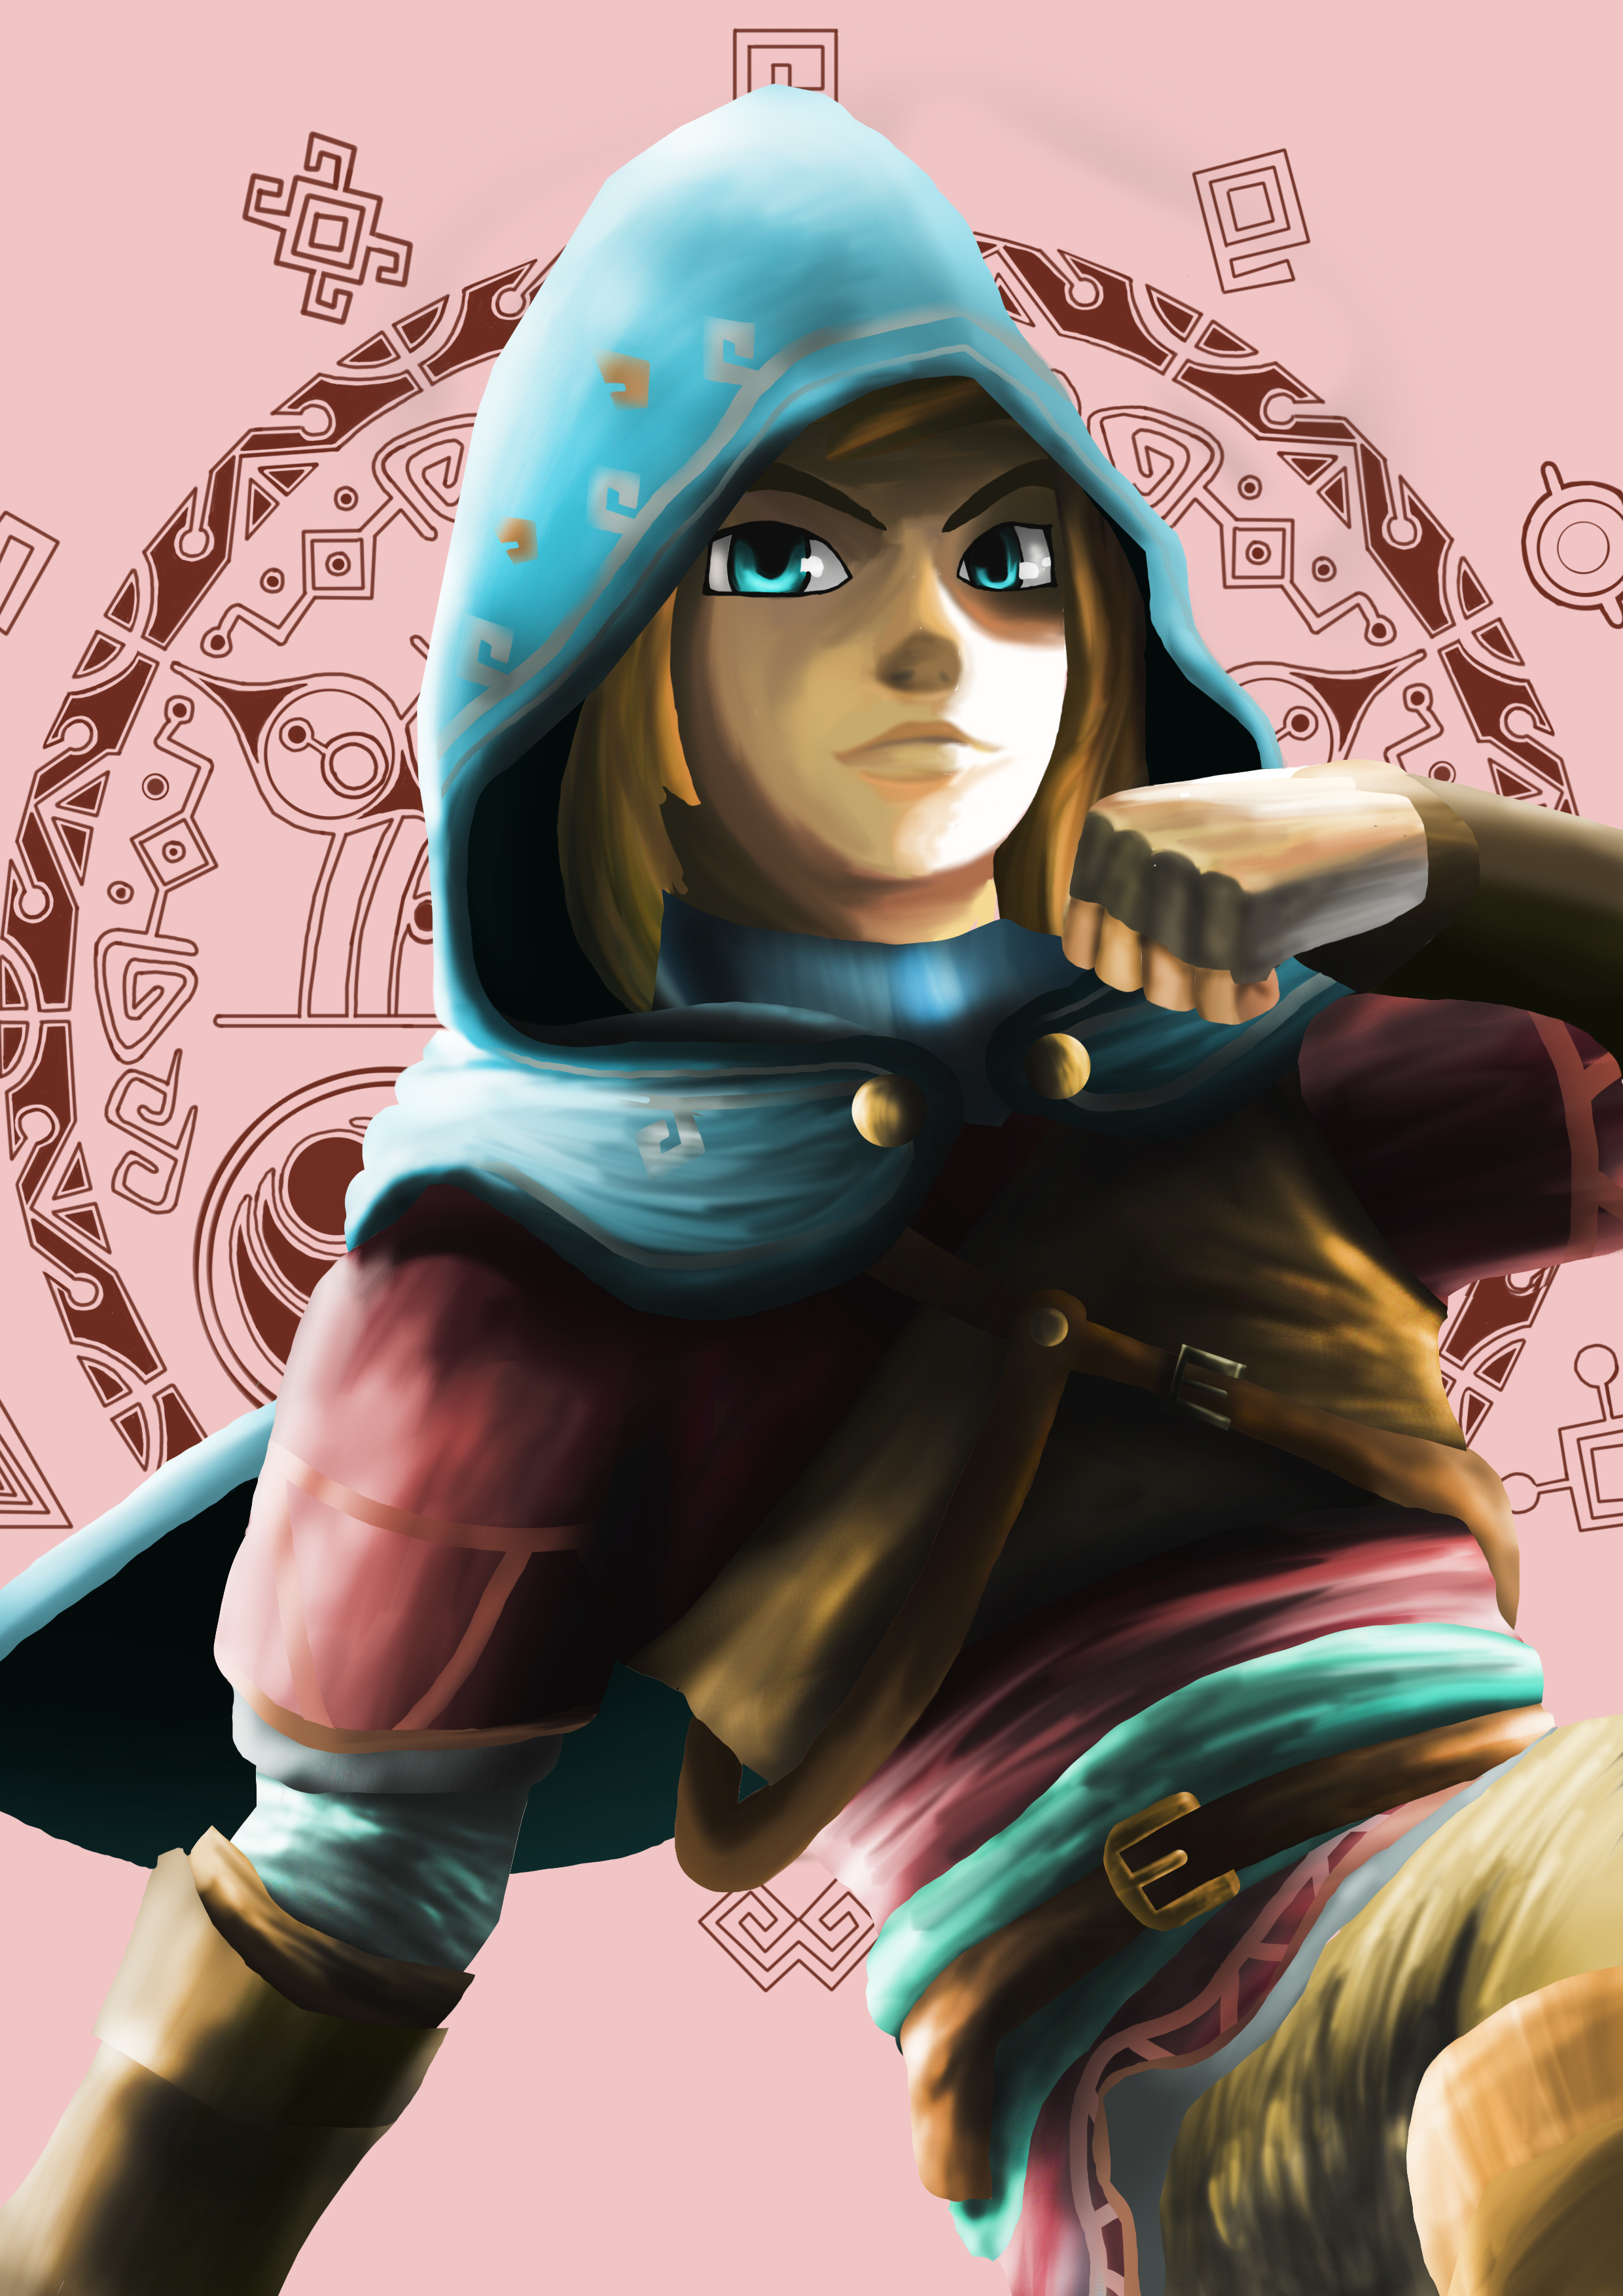 Link in Hylian Clothing